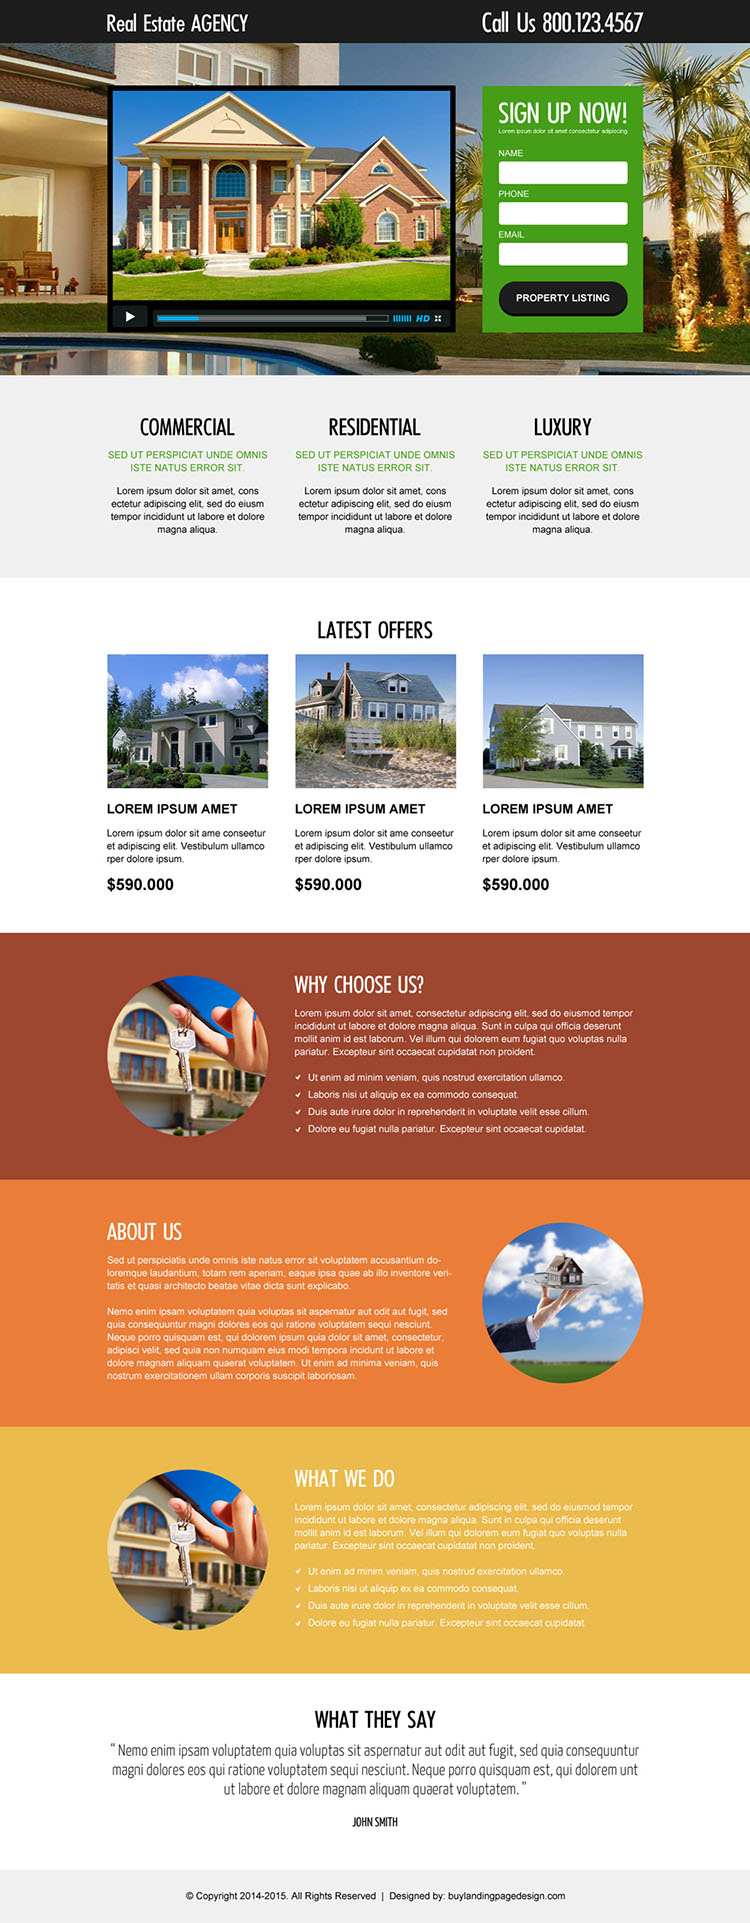 best real estate video responsive lead capture landing page design